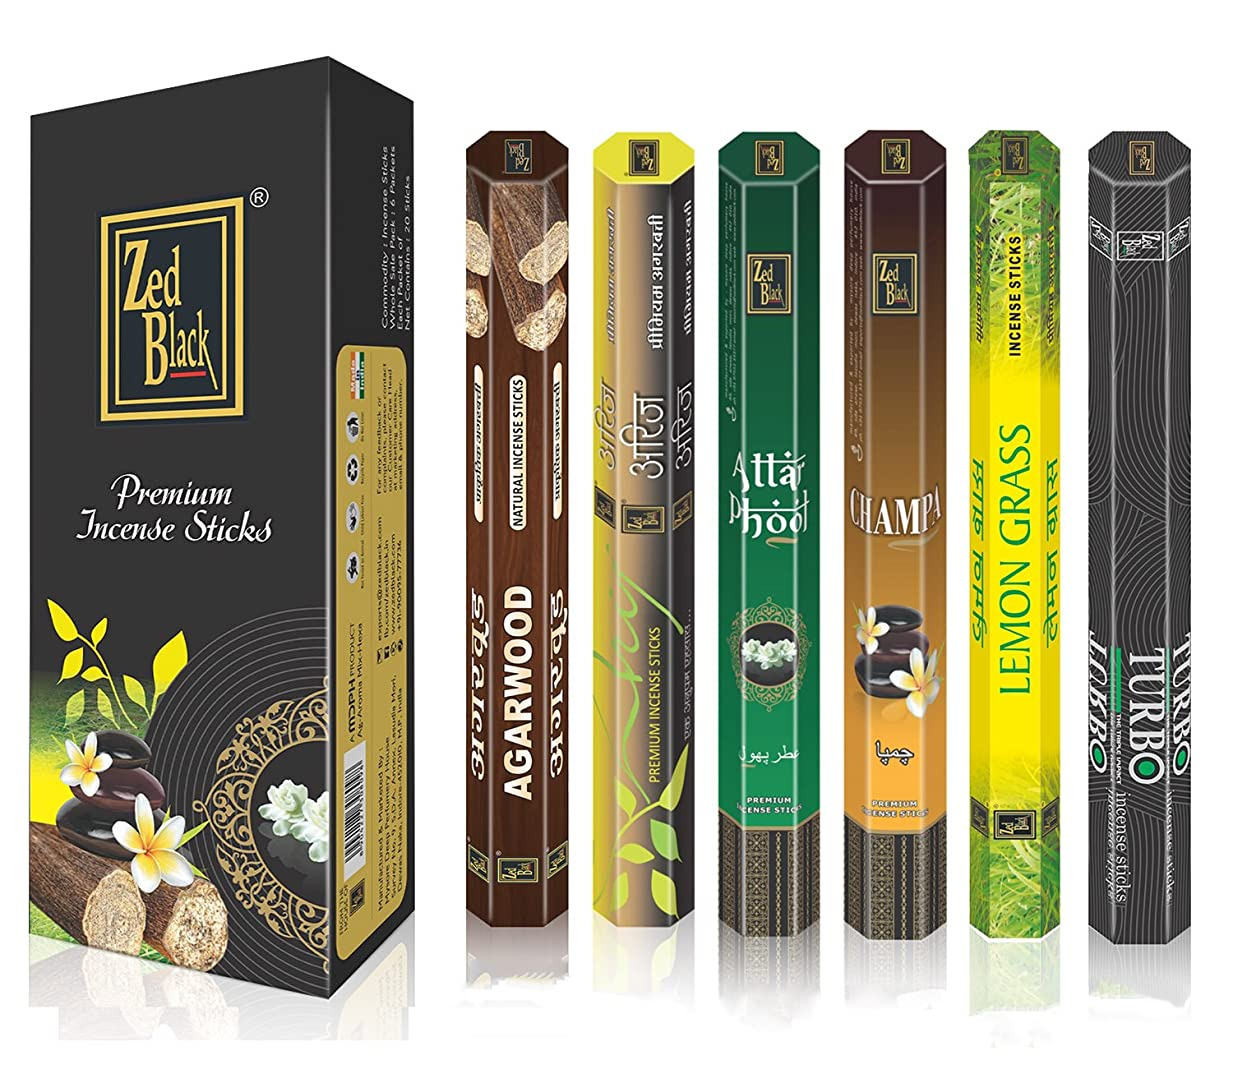 悲観的後ピースAromaプレミアムFragrance Sticks?–?パックof 6?–?Serene and Enthralling 120?Incense Sticks?–?Feel The natural fragrances with Scented Oil Sticks